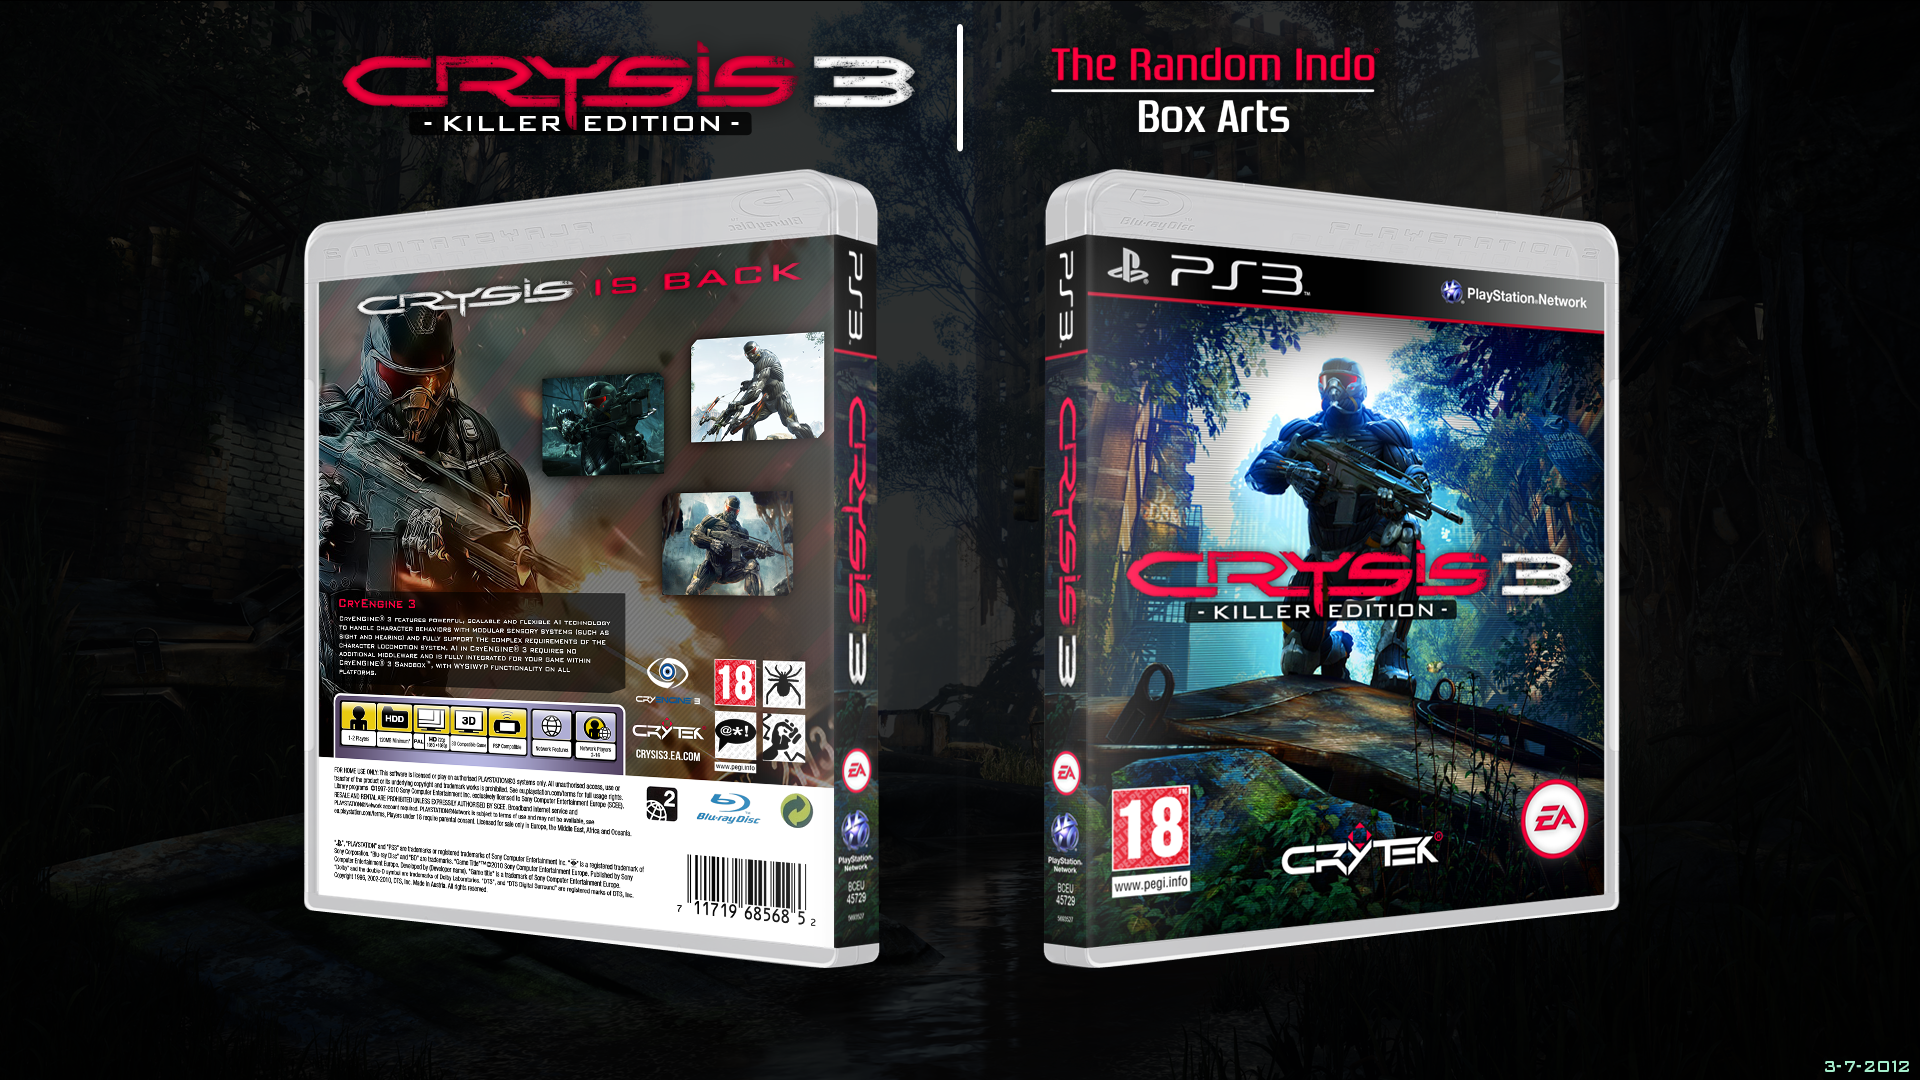 Crysis 3 - Killer Edition box cover